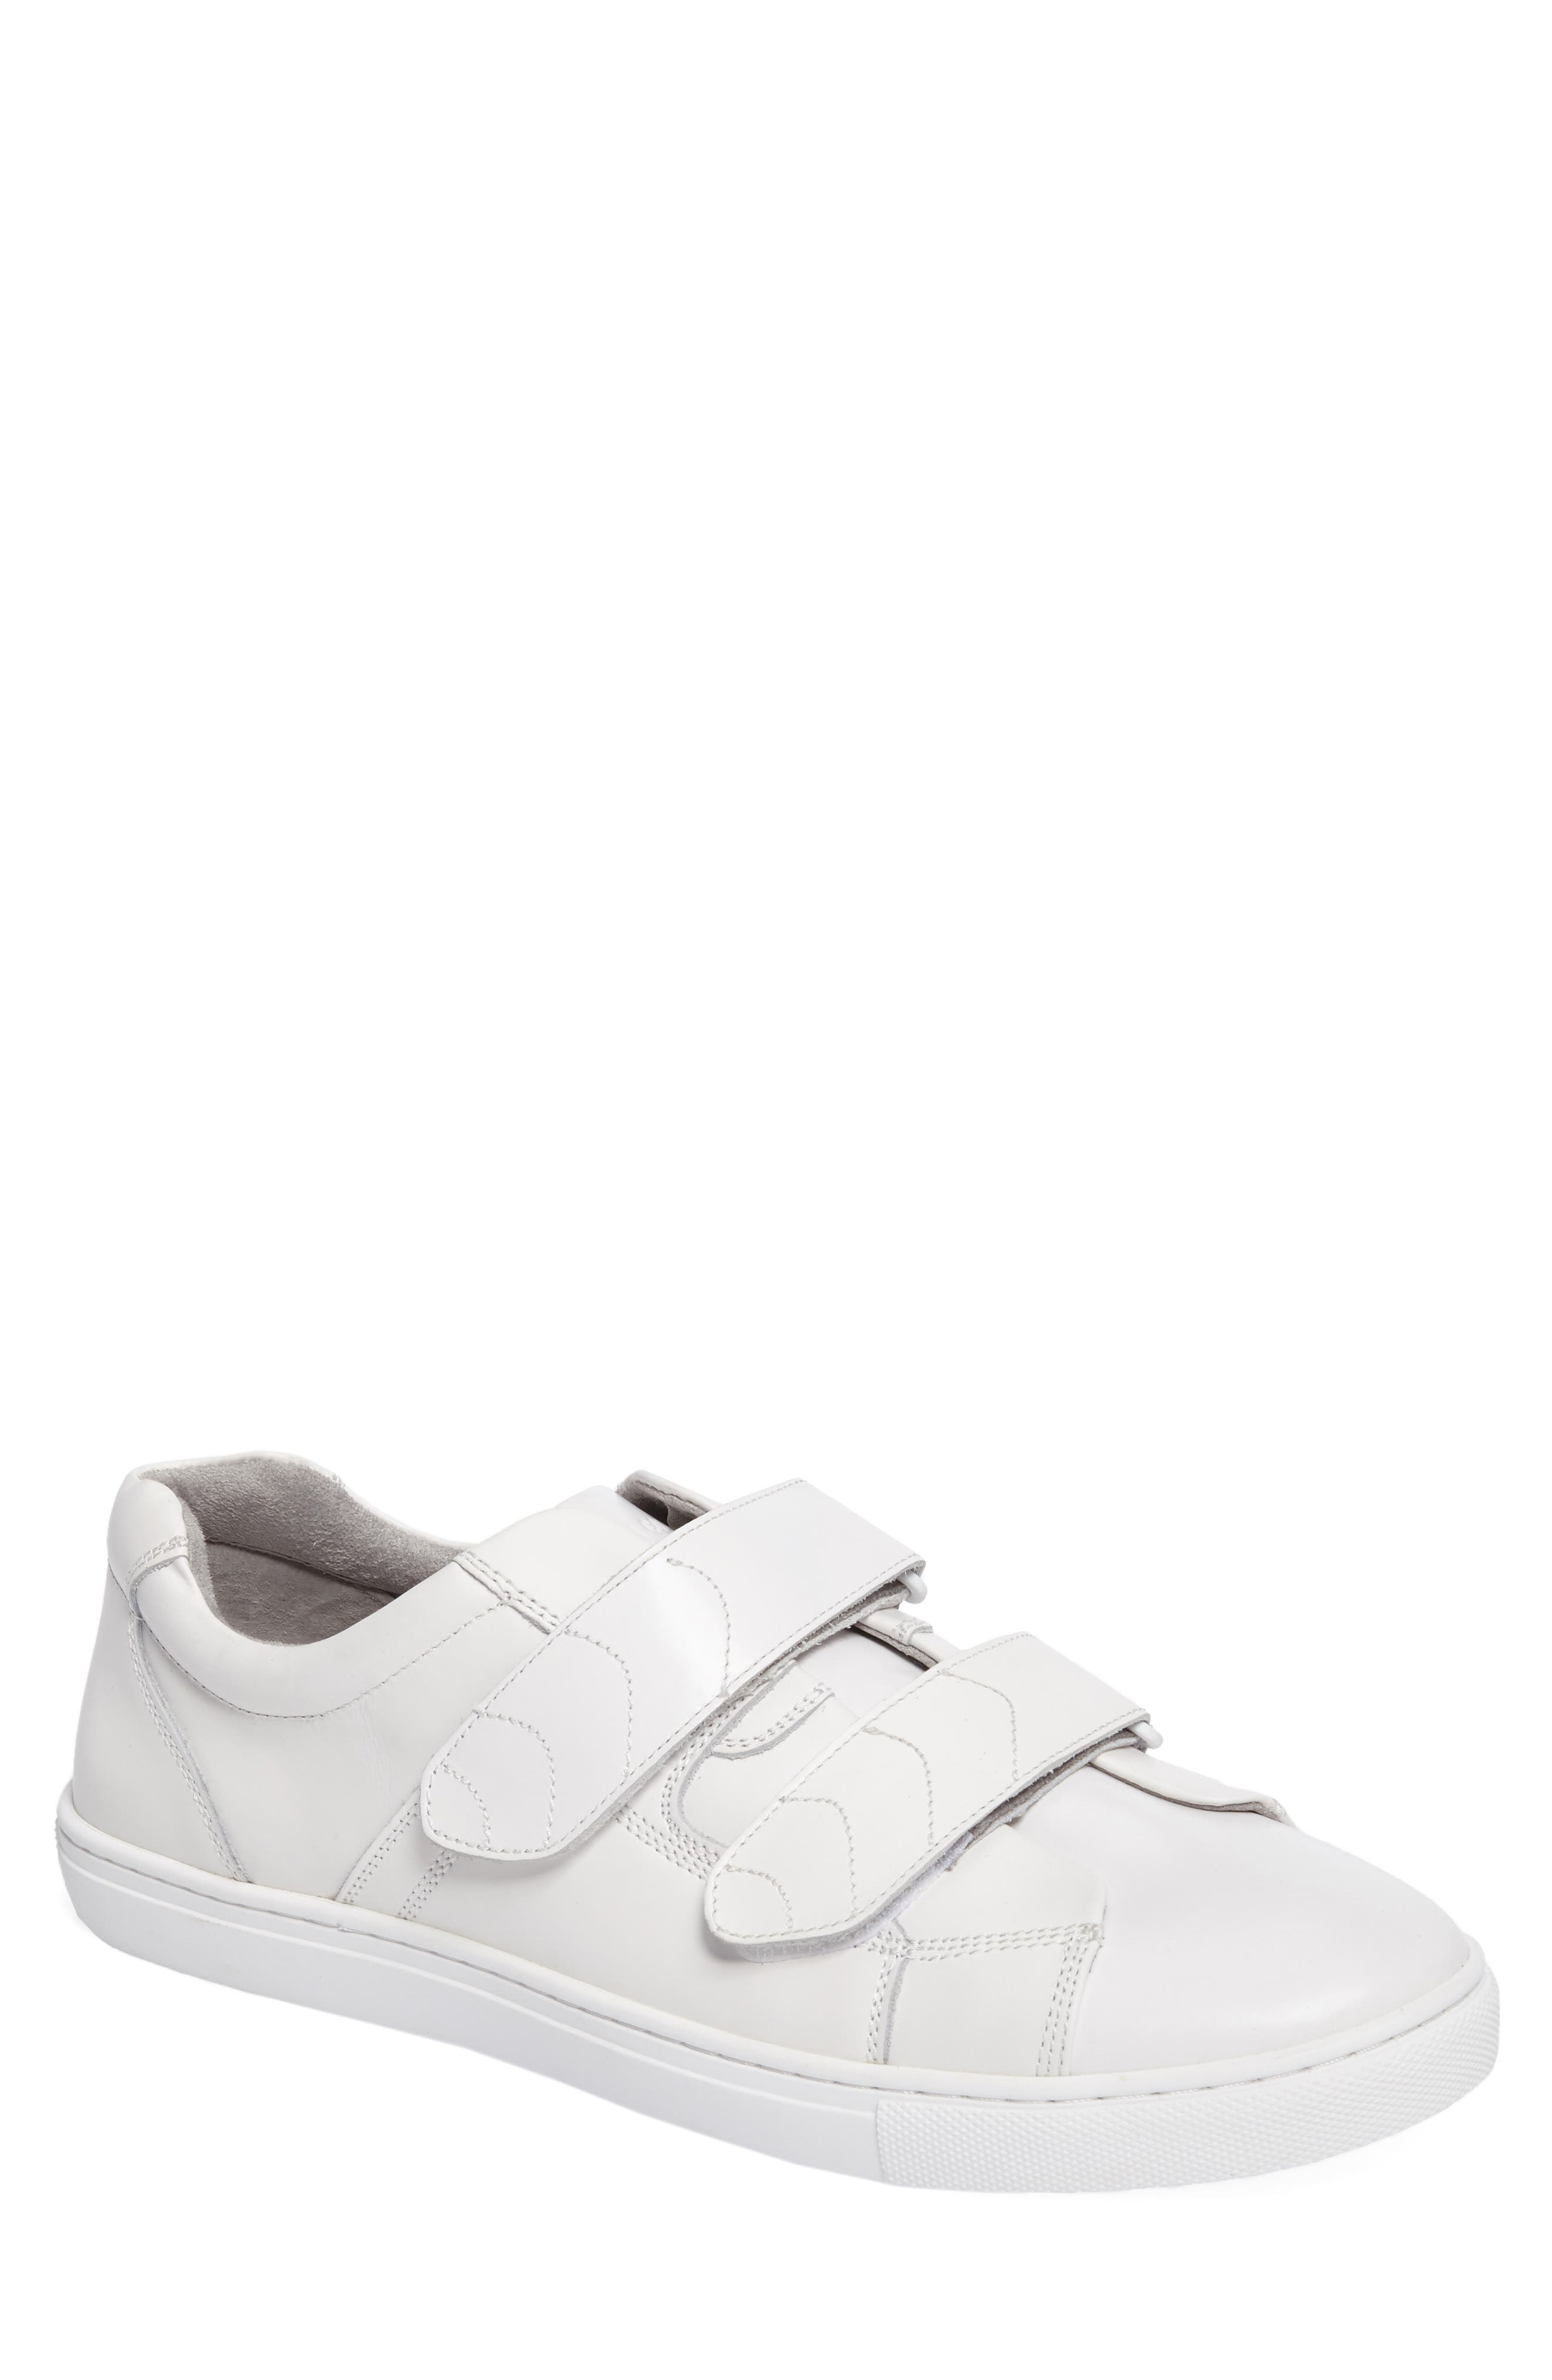 Alternate Image 1 Selected - Kenneth Cole New York Low Top Sneaker (Men)